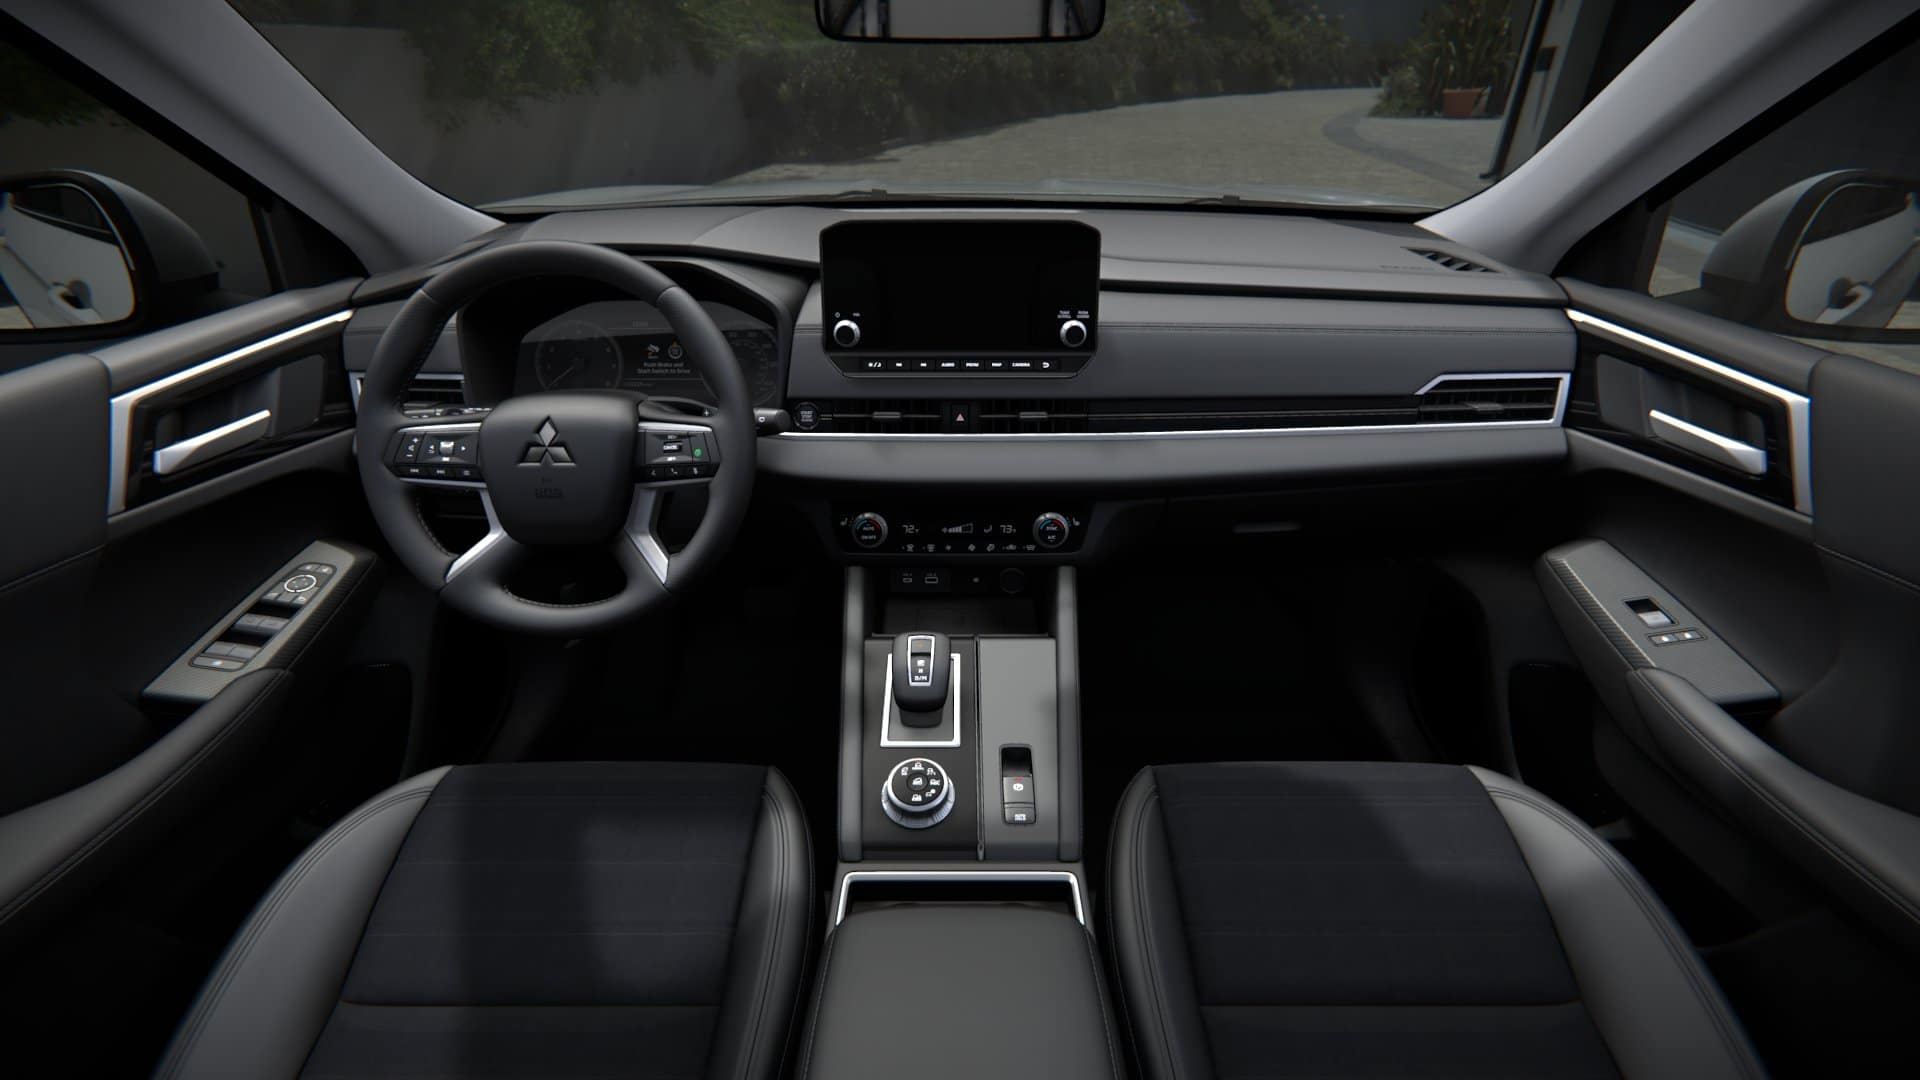 picture of mitsubishi outlander 2022 front seat interior for sale in Hooksett New Hampshire